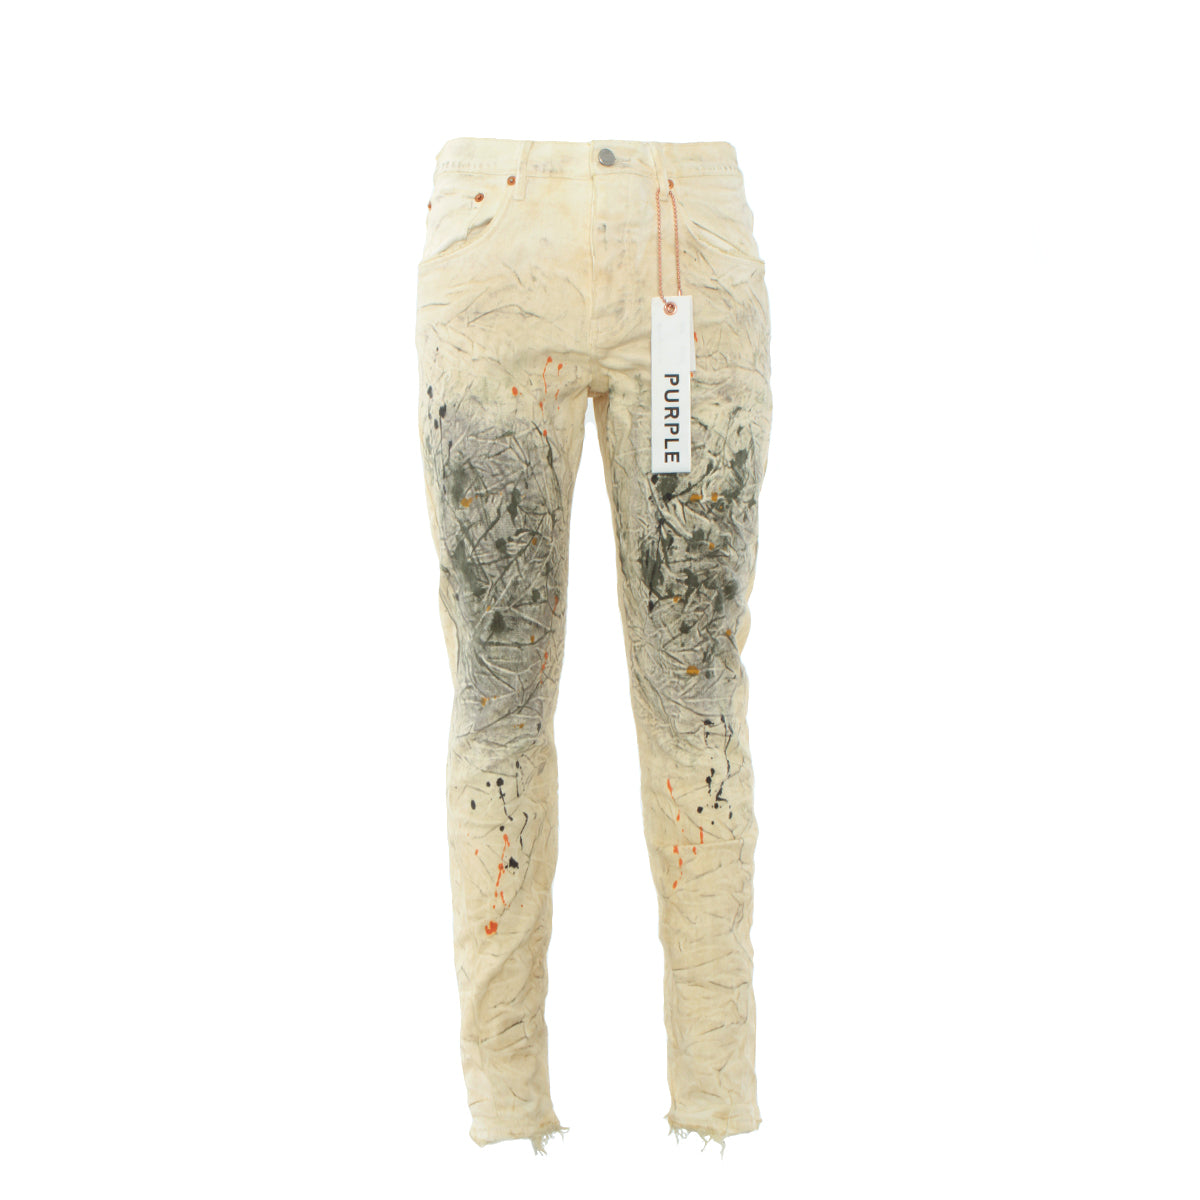 PURPLE Denim P011-White Dirty Paint Men's Designer Jeans